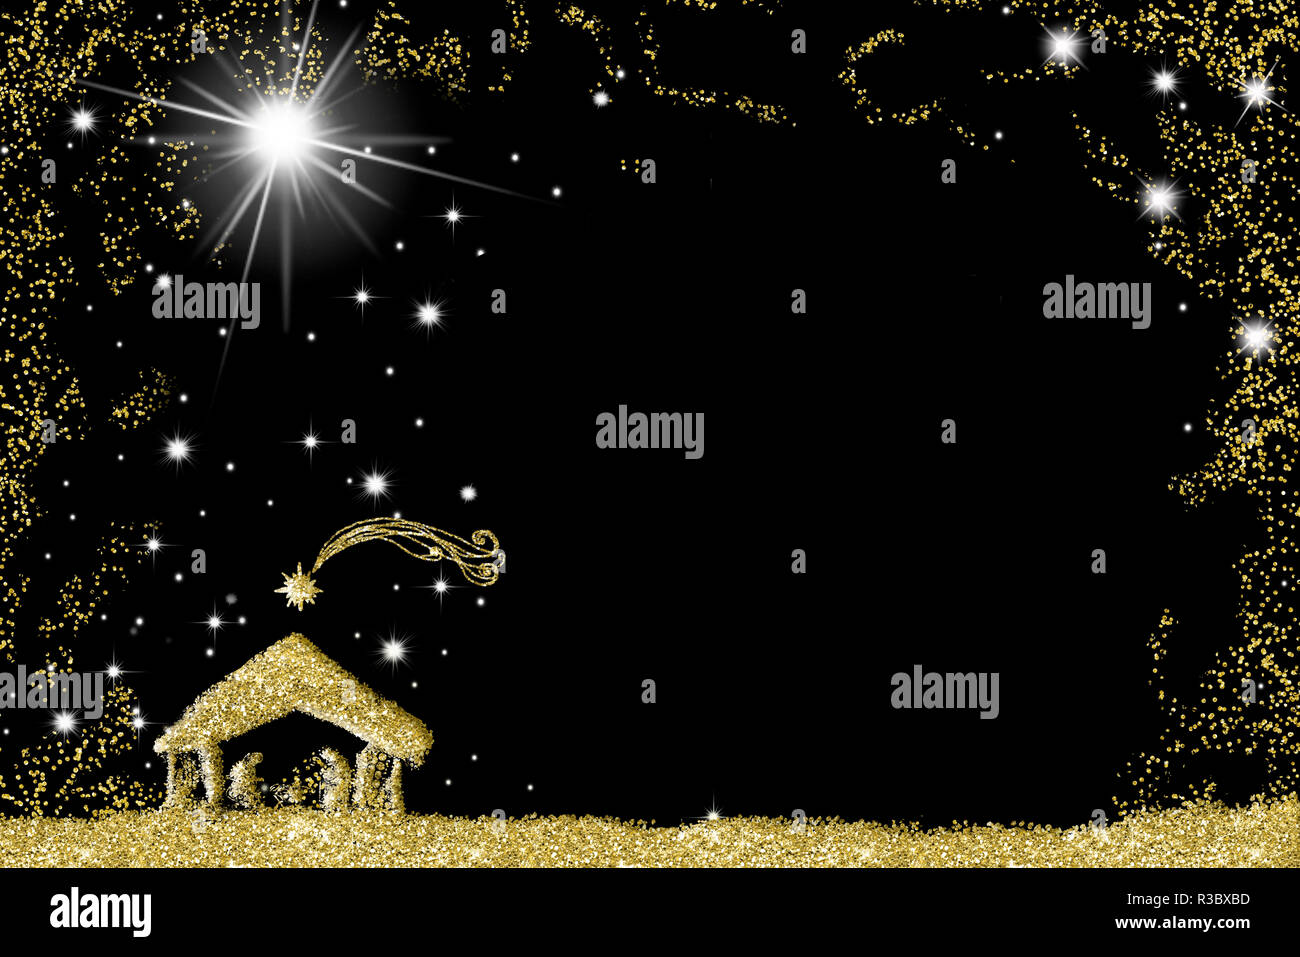 Elegant Christmas Nativity Scene Greetings Cards Abstract Freehand